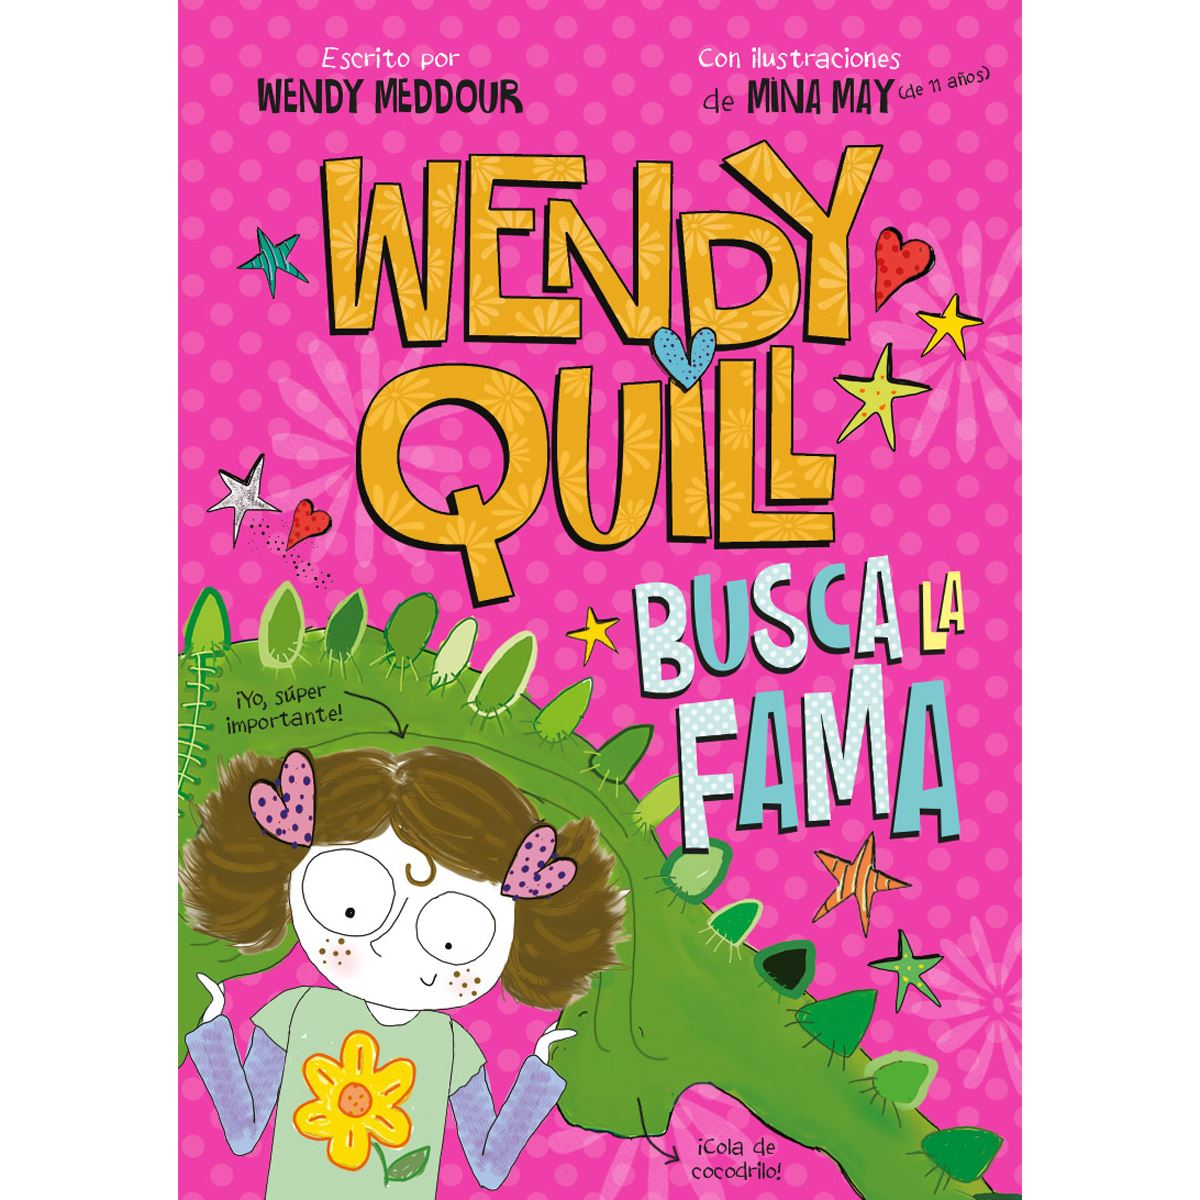 Wendy Quill busca la fama